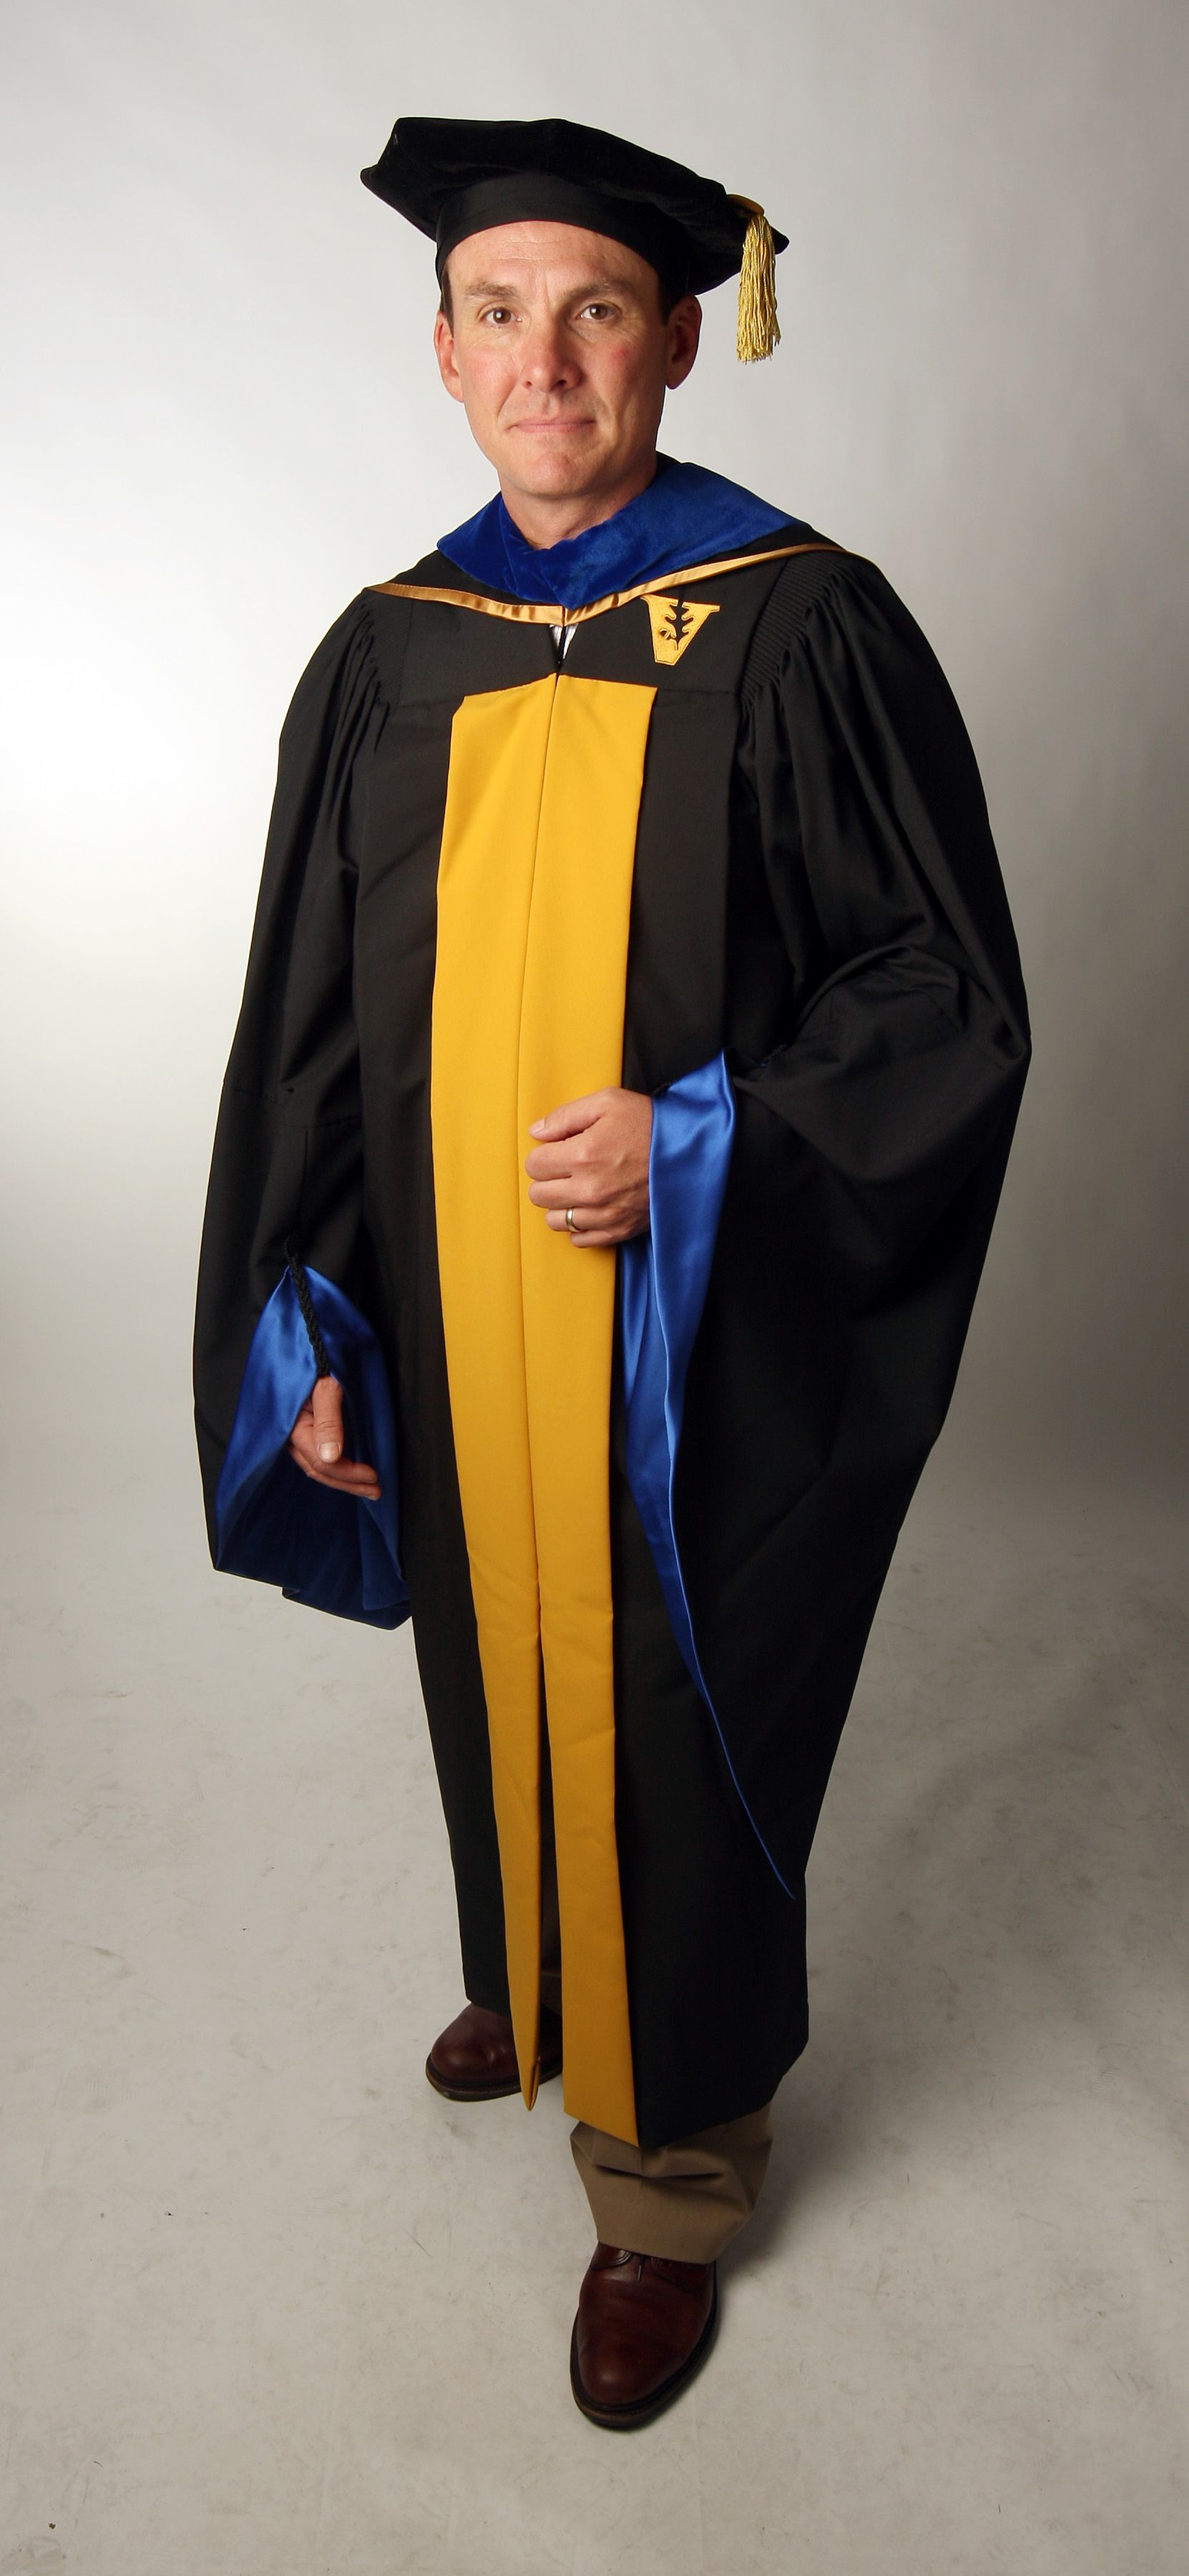 Vanderbilt University Doctoral Regalia | Academic Regalia ...